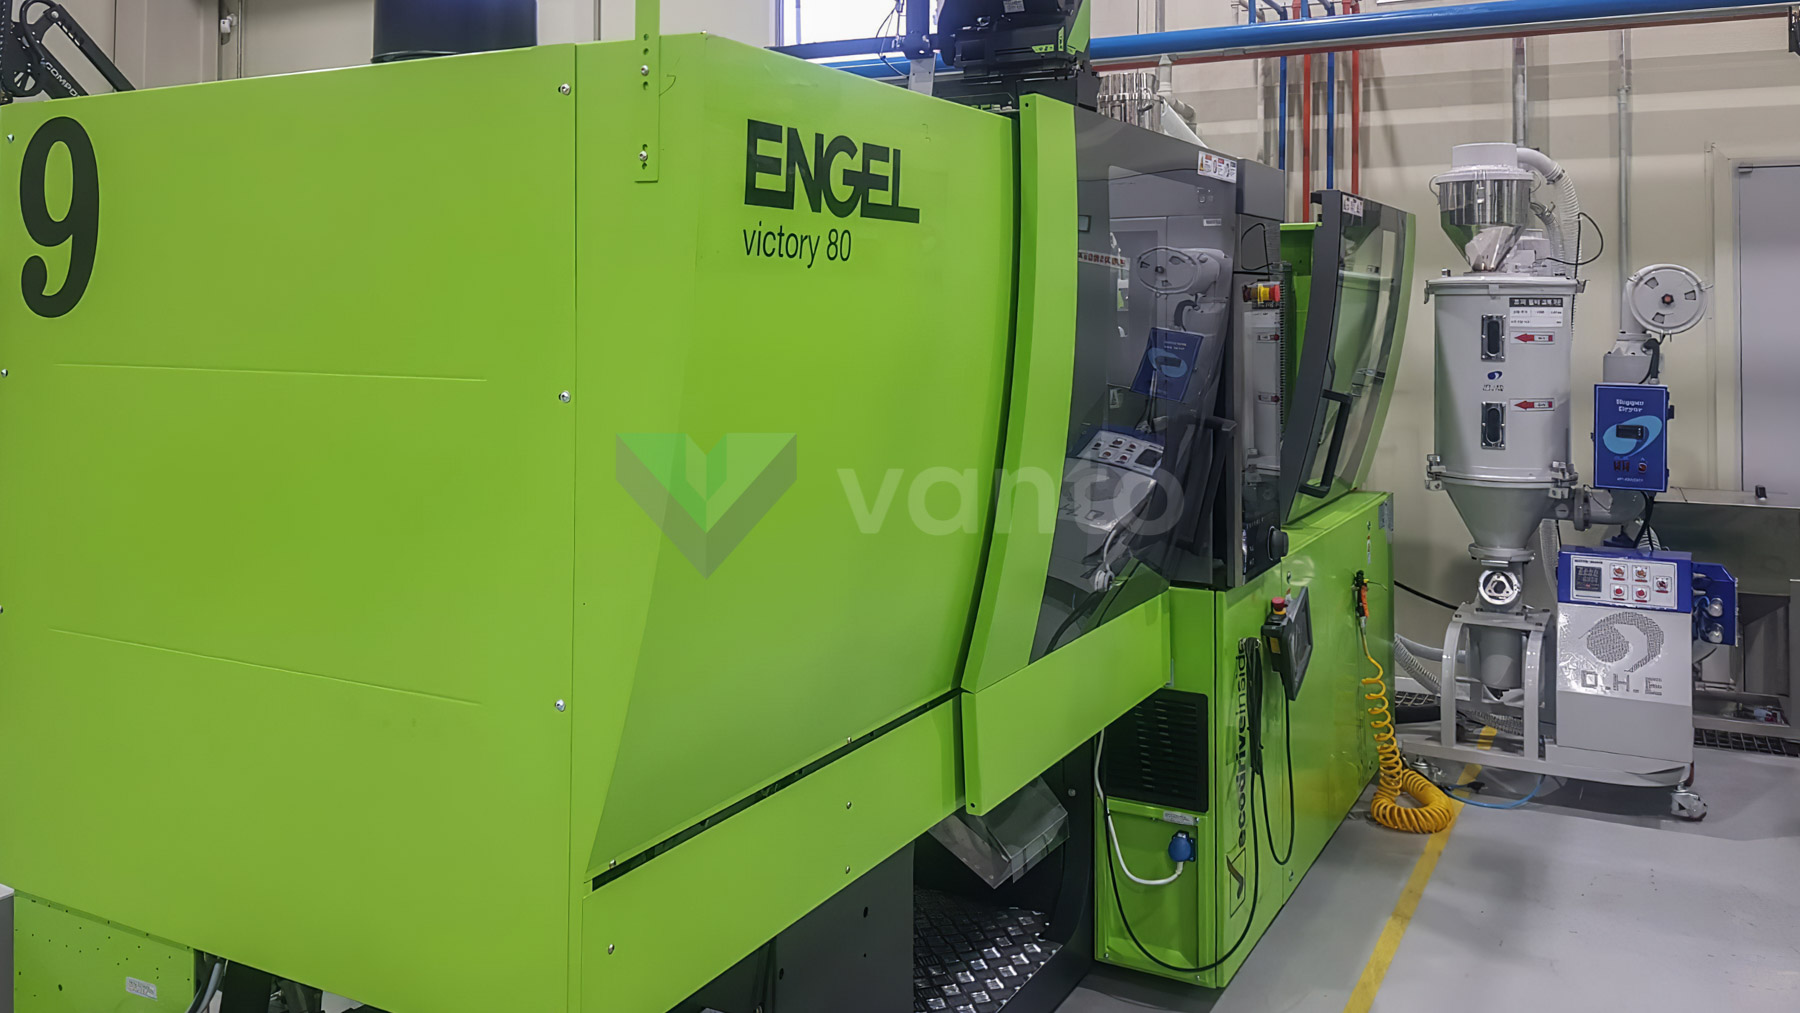 ENGEL VICTORY VC 330 / 80 TECH PRO 80t injection molding machine (2017) id10410